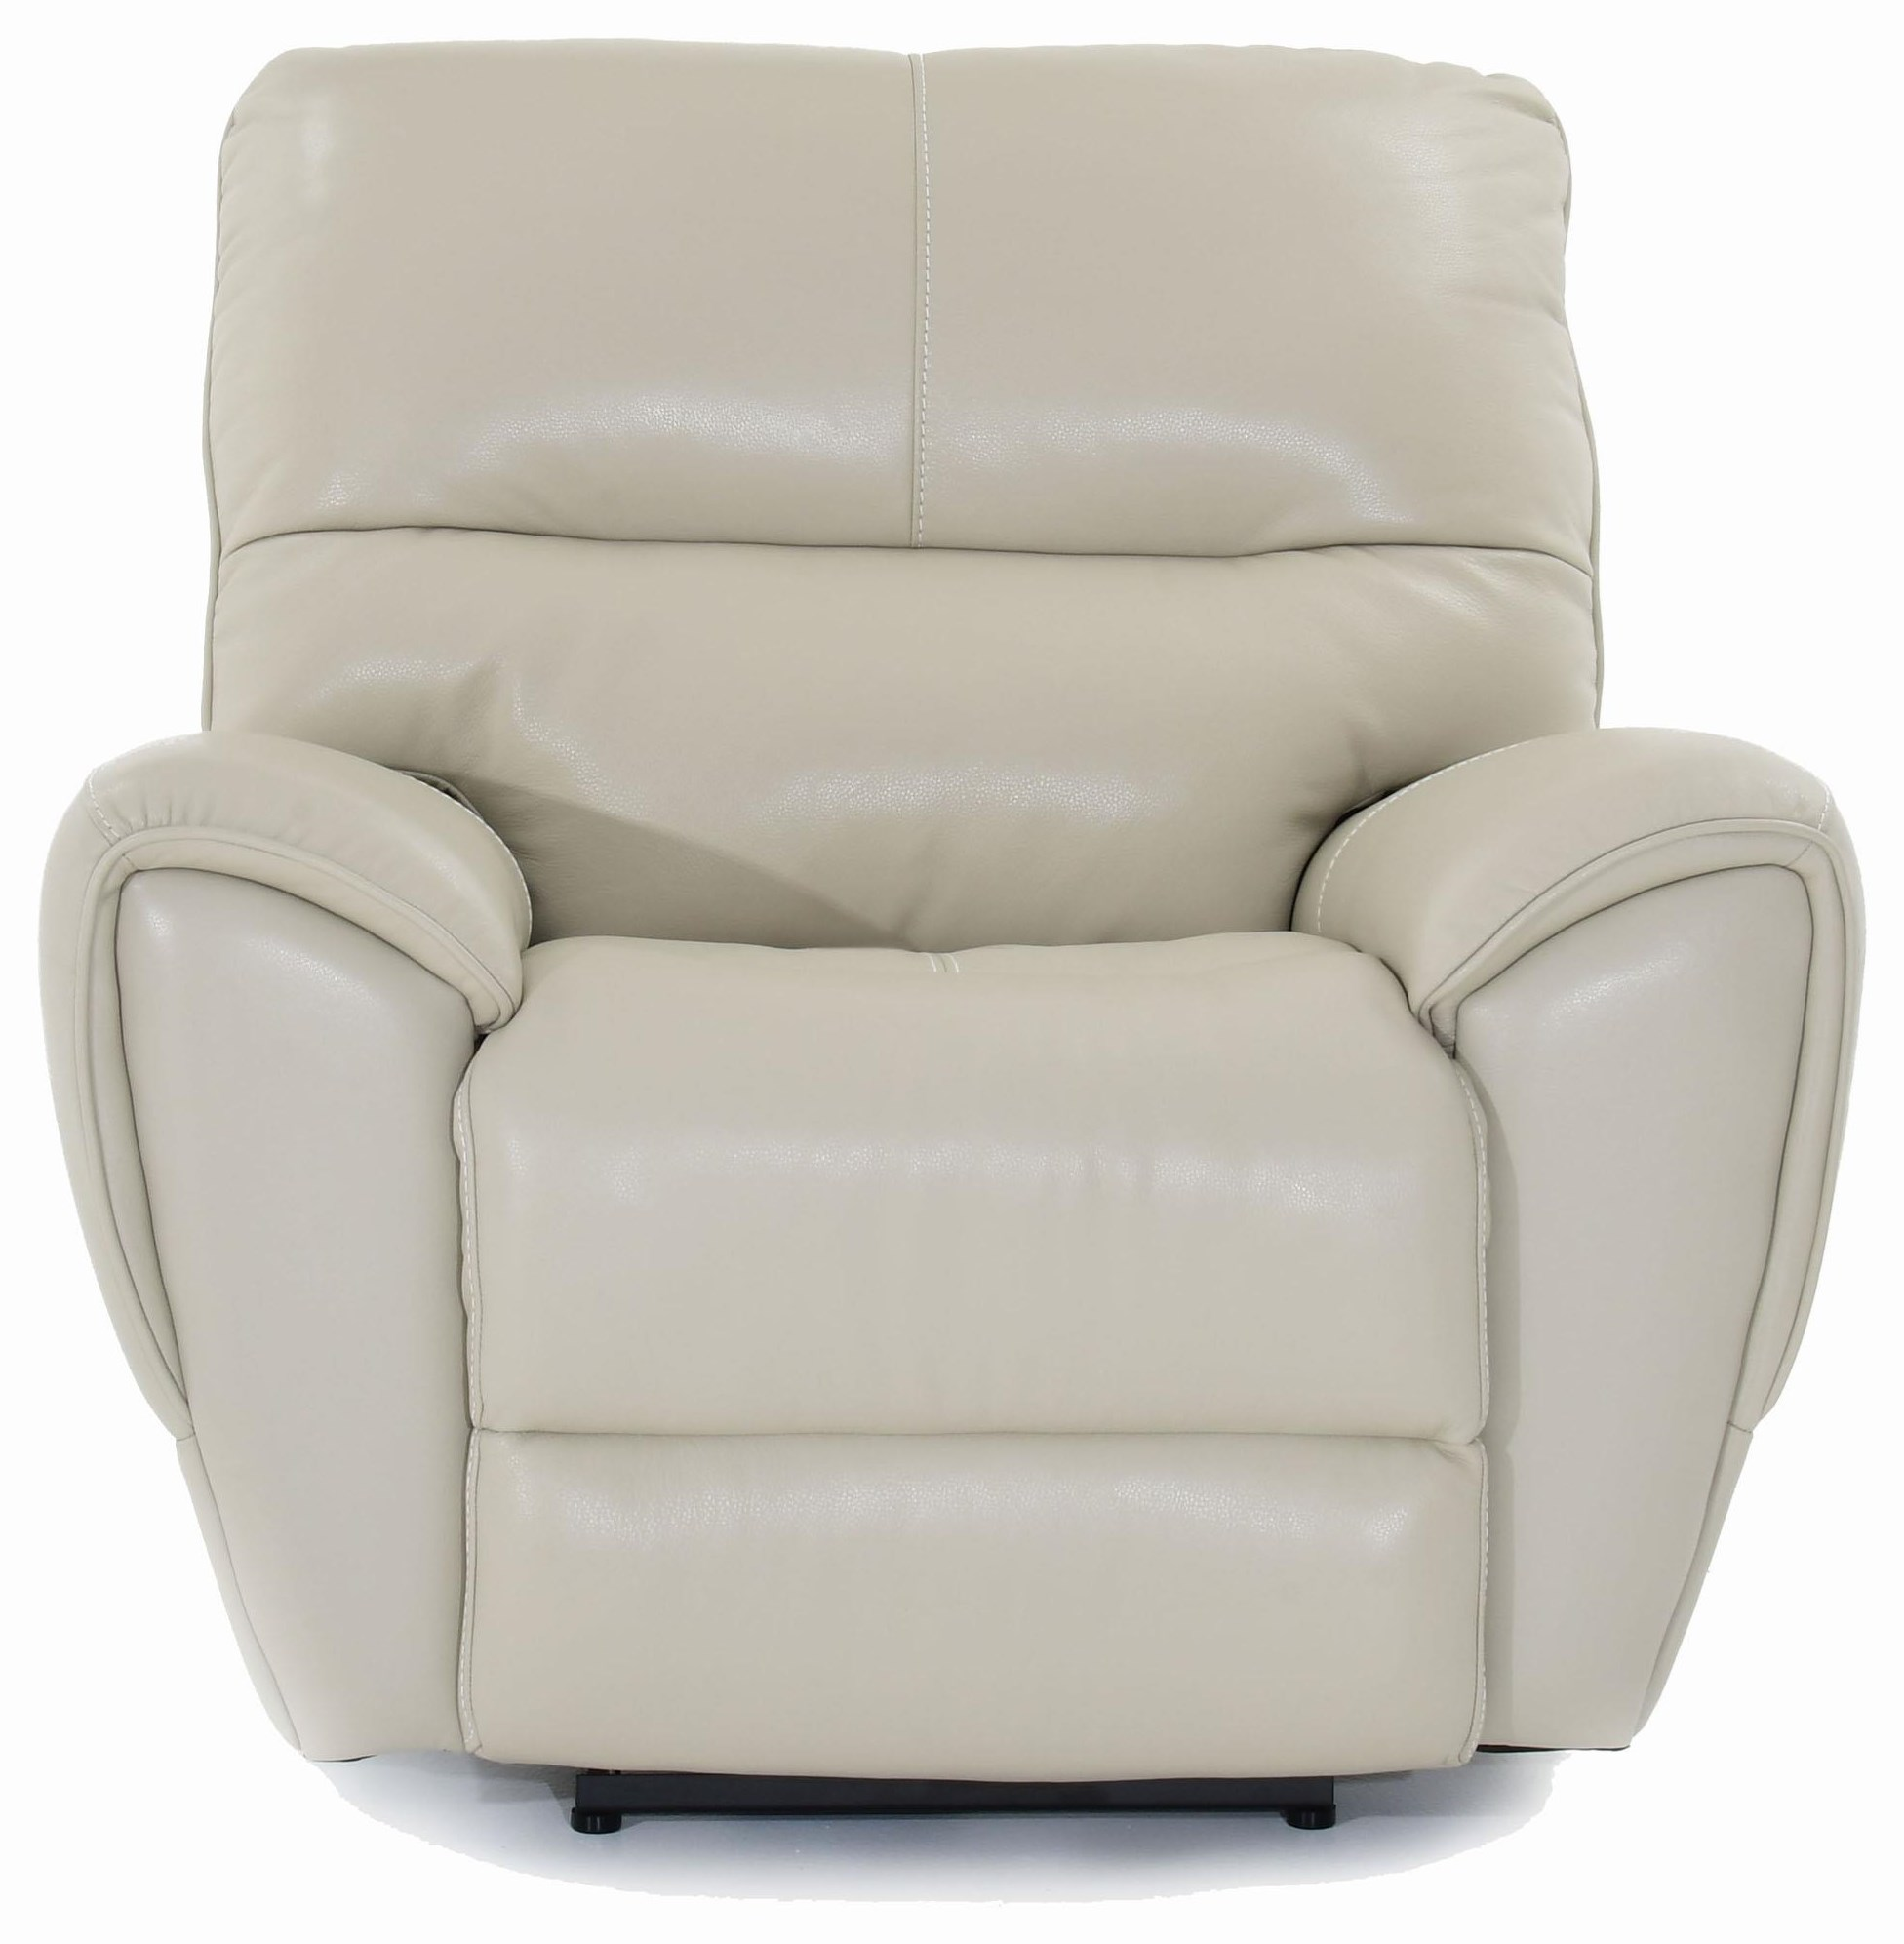 E1524 Power Recliner by Futura Leather at Baer's Furniture